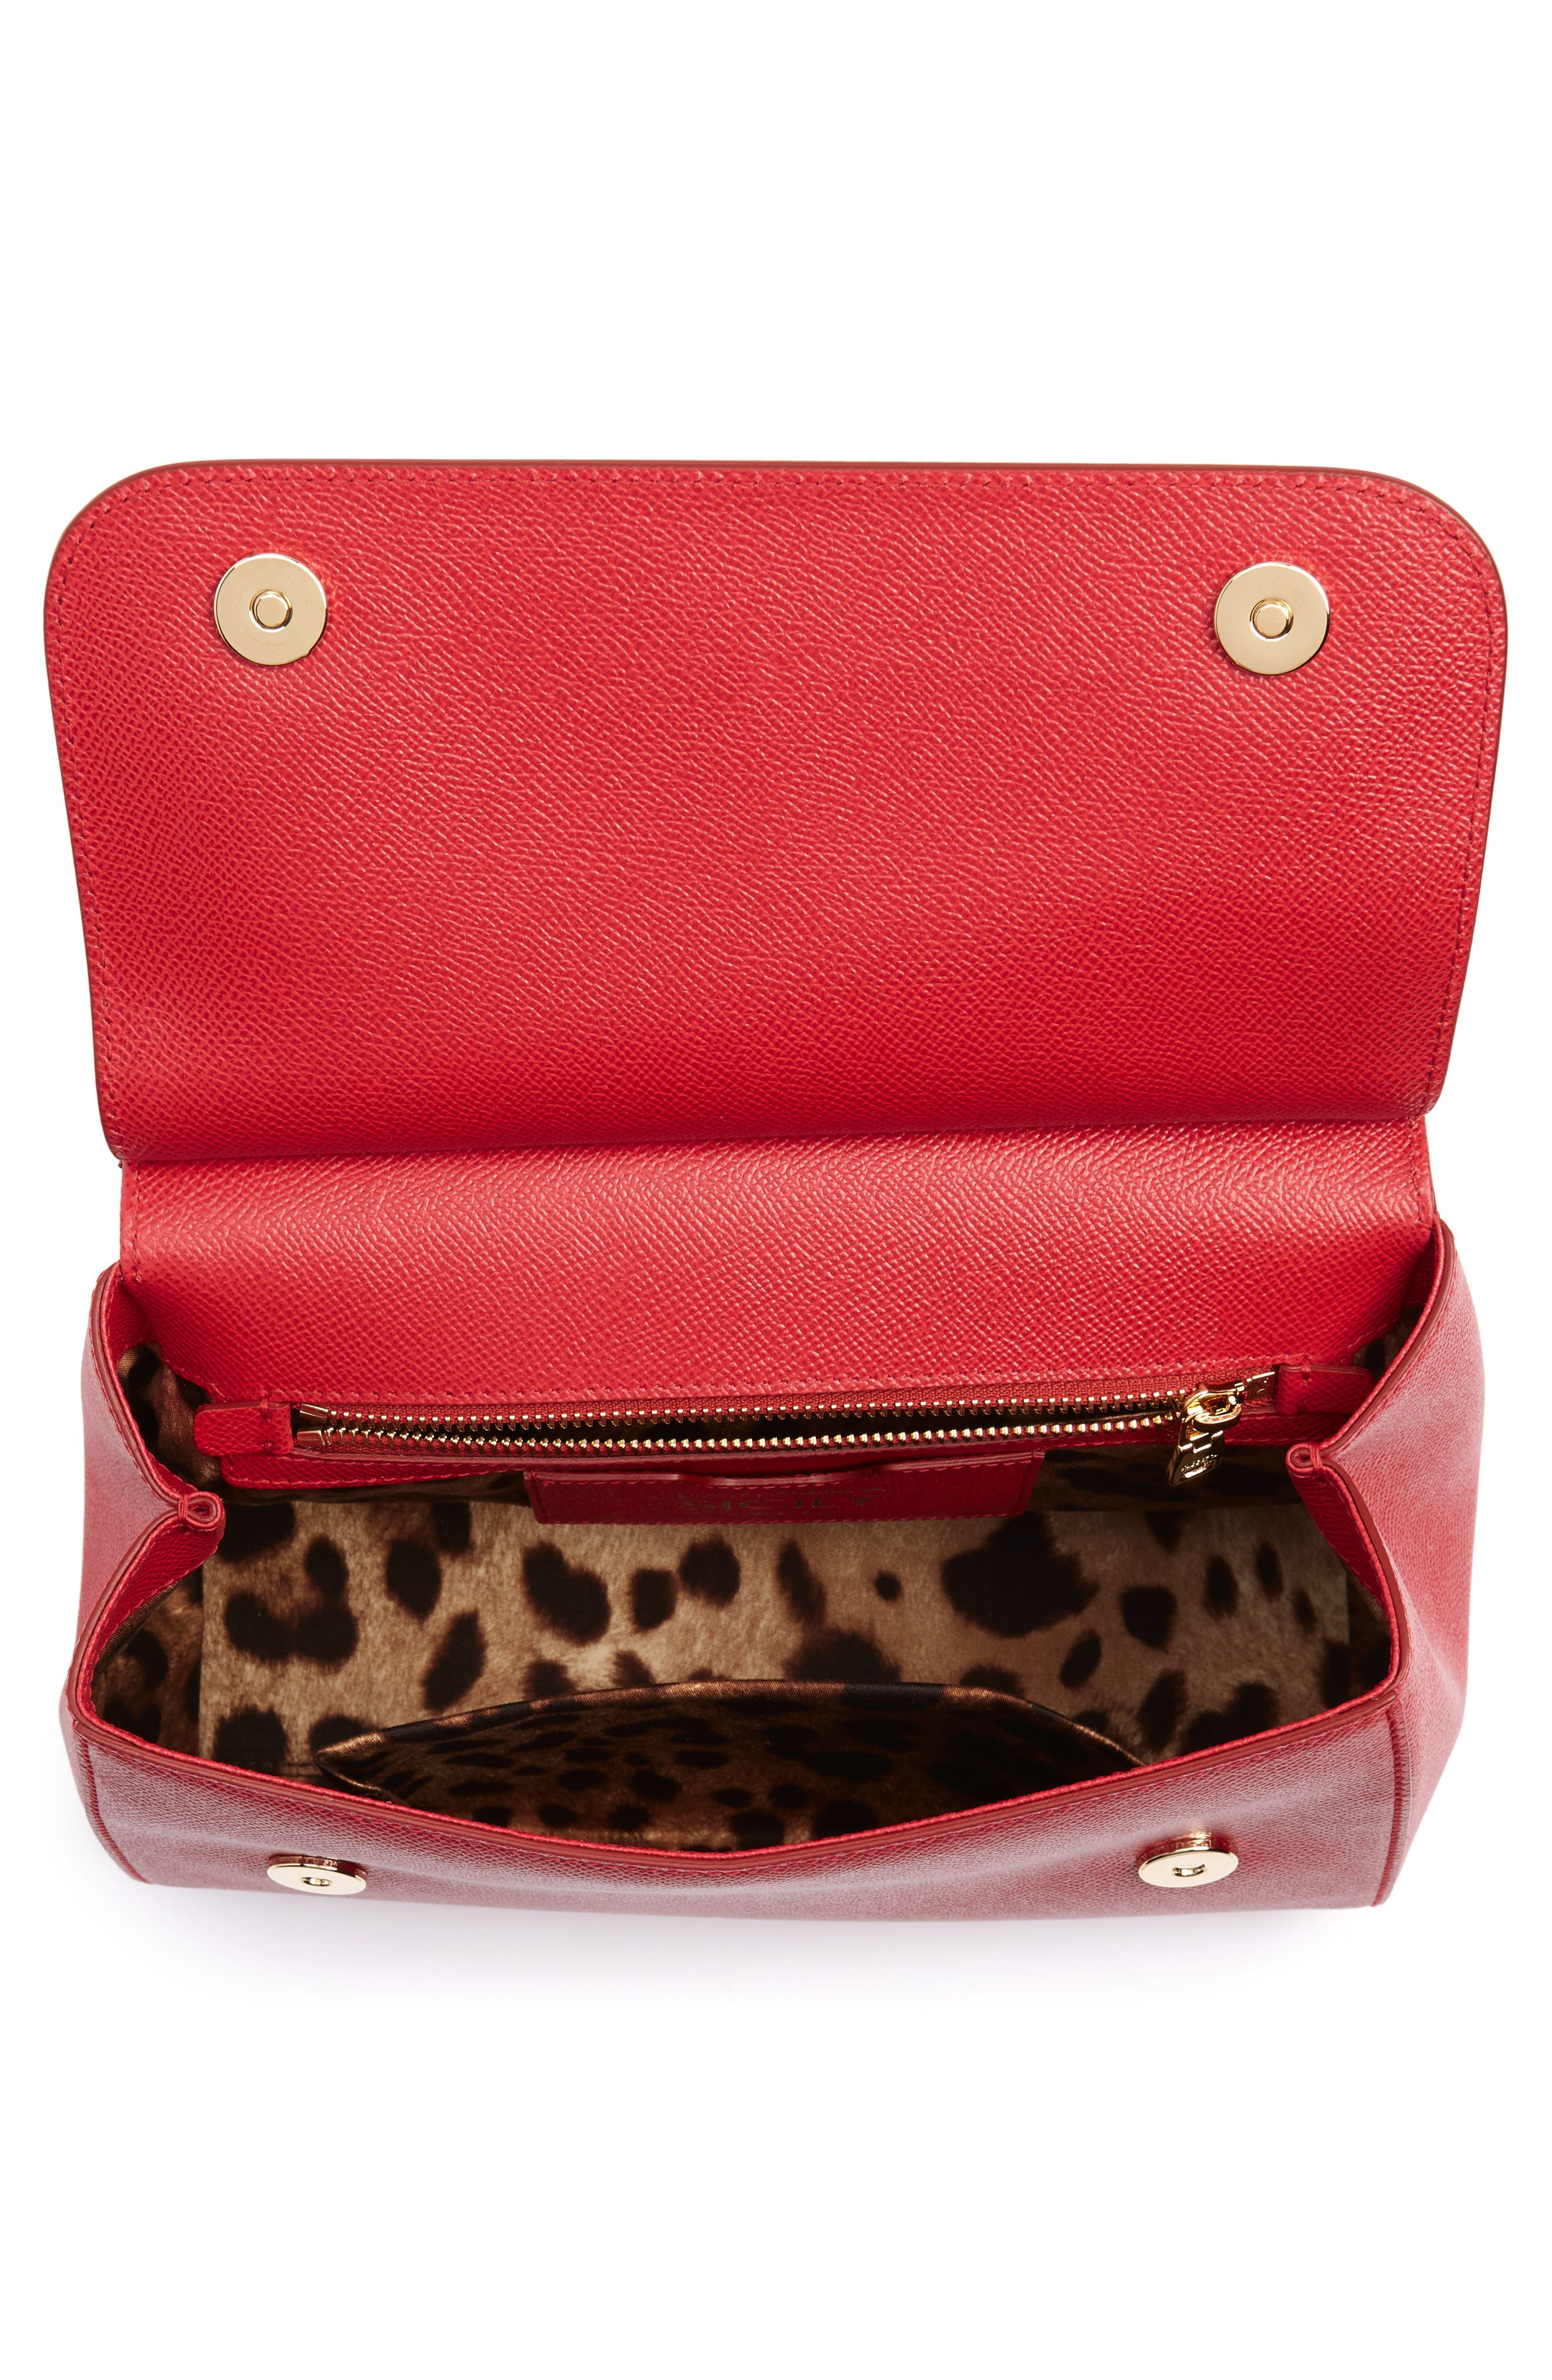 'Small Miss Sicily' Leather Satchel,                             Alternate thumbnail 4, color,                             RED